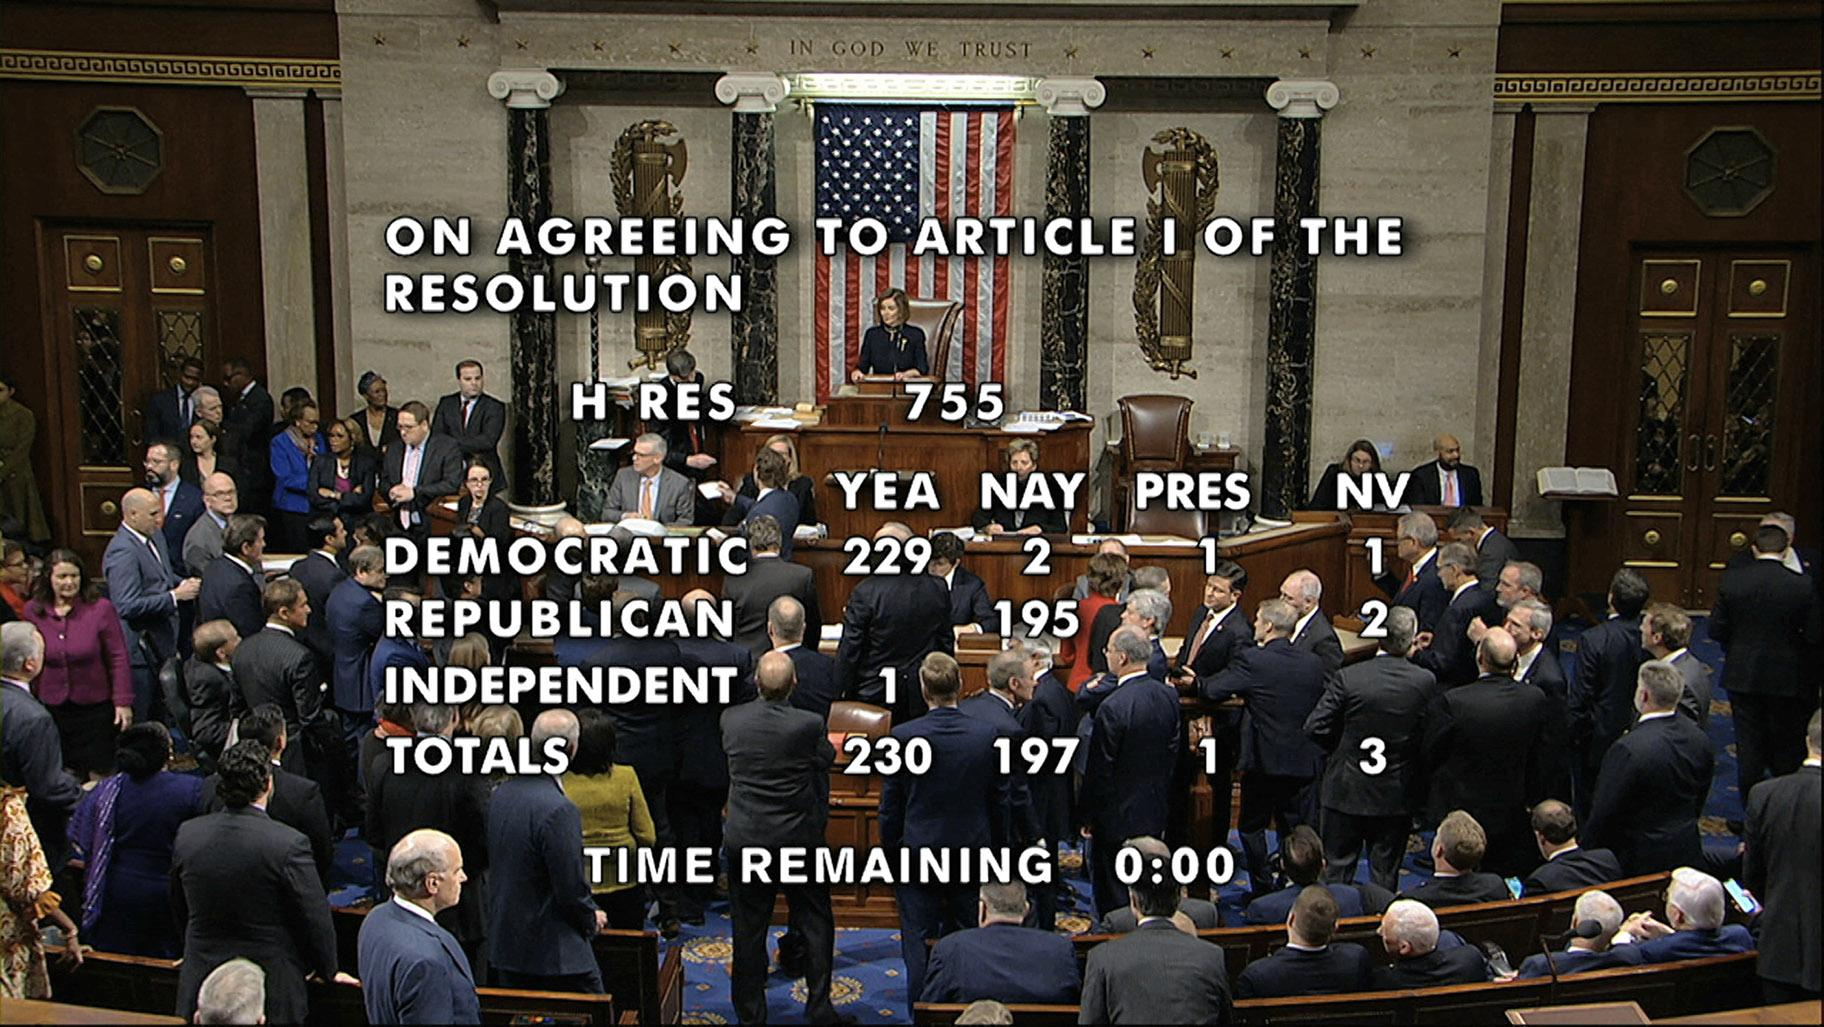 The vote total showing the passage of the first article of impeachment, abuse of power, against President Donald Trump by the House of Representatives at the Capitol in Washington, Wednesday, Dec. 18, 2019. (House Television via AP)